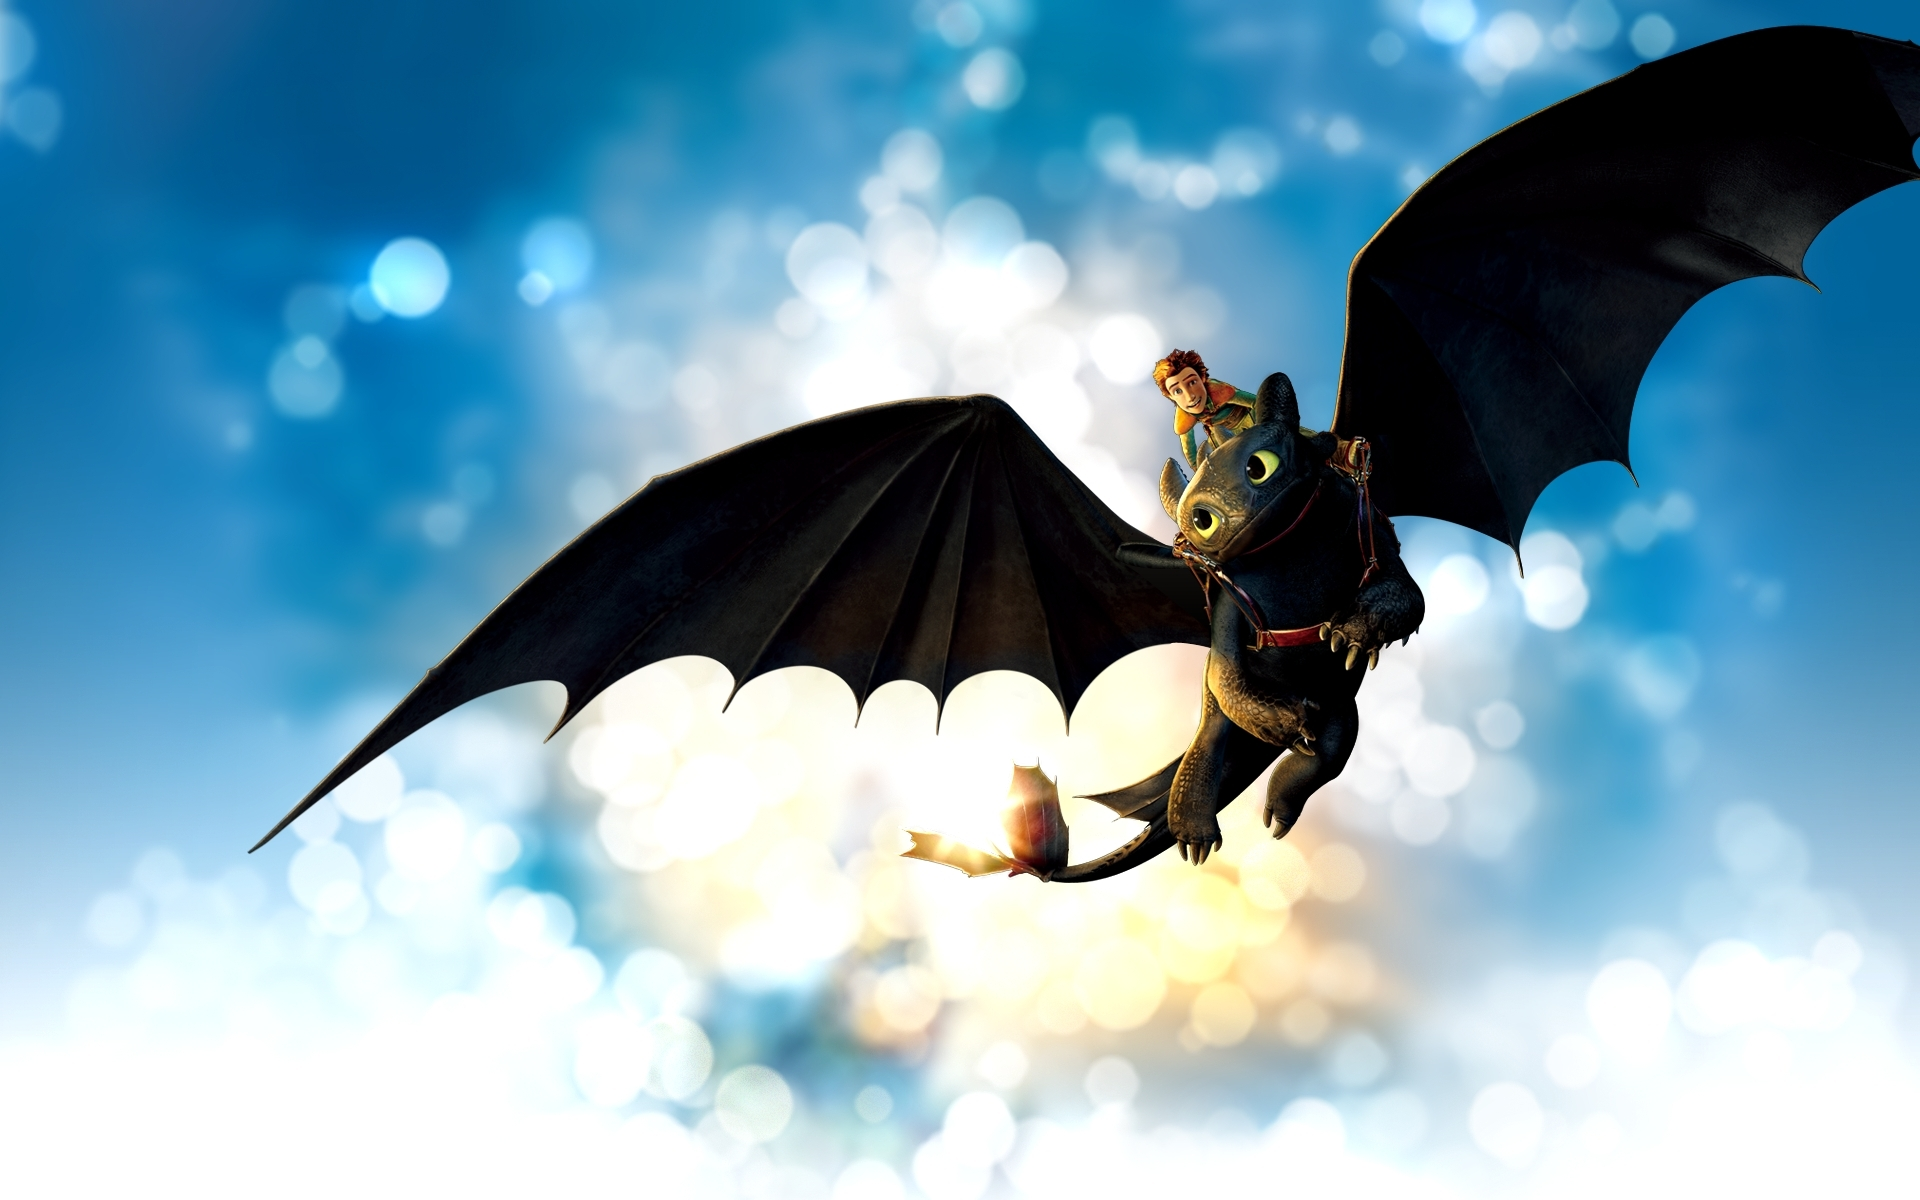 How To Train Your Dragon Wallpaper Toothless 1 Widescreen 1920x1200